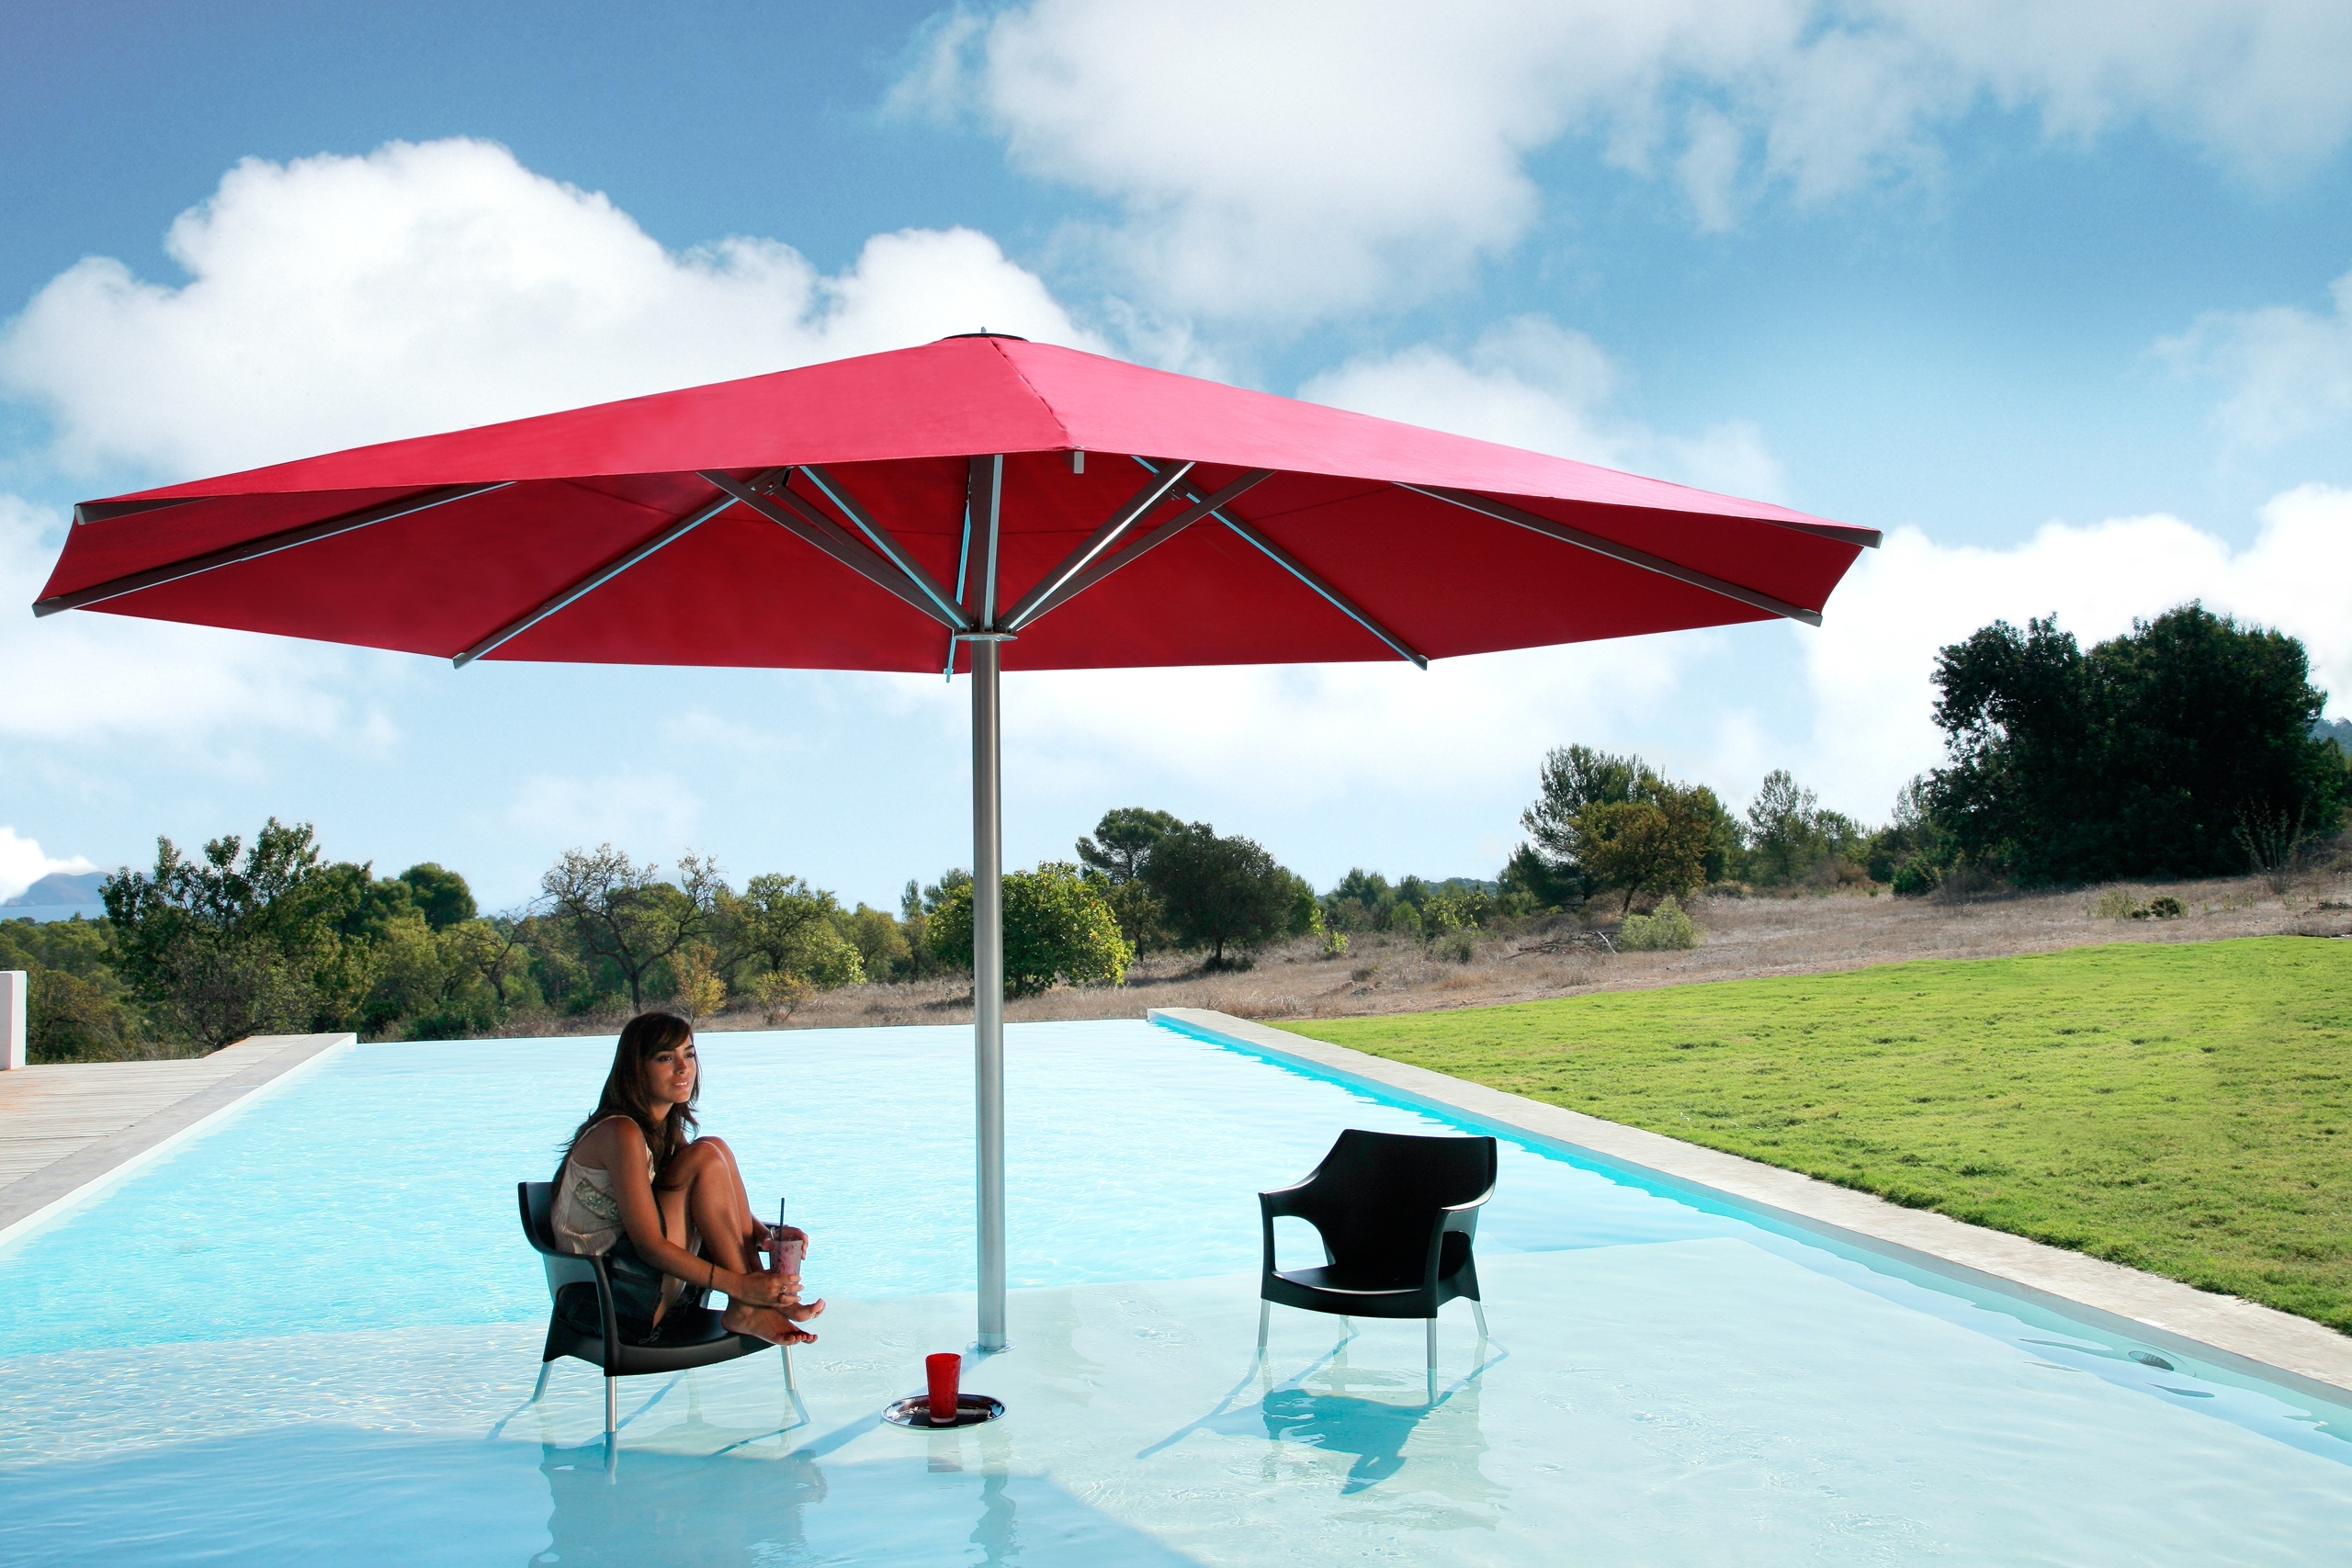 Most Current Giant Patio Umbrellas Regarding Round Dimension For Giant Patio Umbrellas (View 13 of 20)